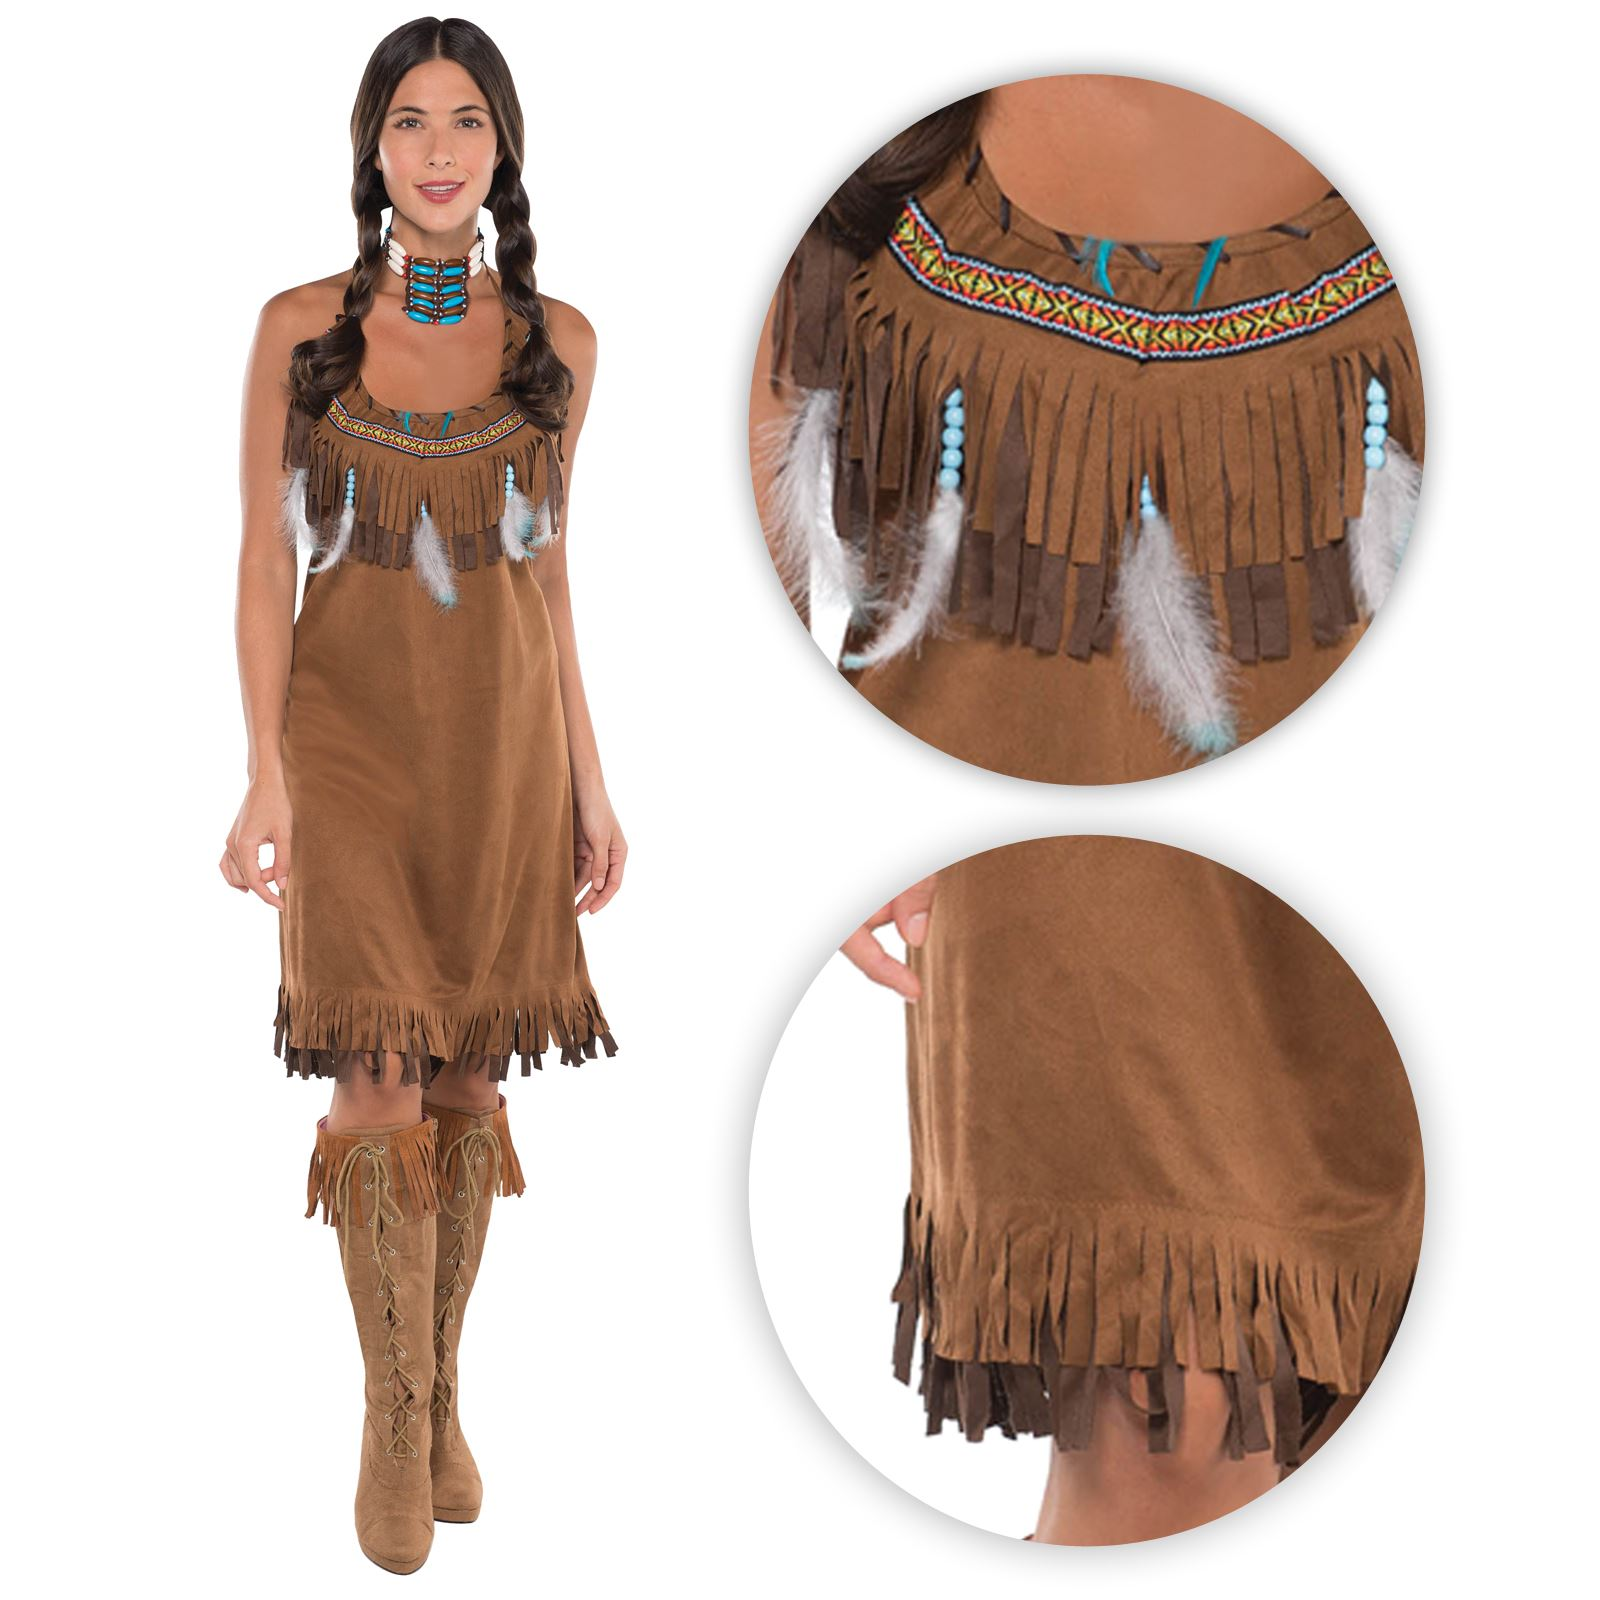 Pocahontas Kostüm Selber Machen Ladies Womens Red Indian Fancy Dress Costume Pocahontas